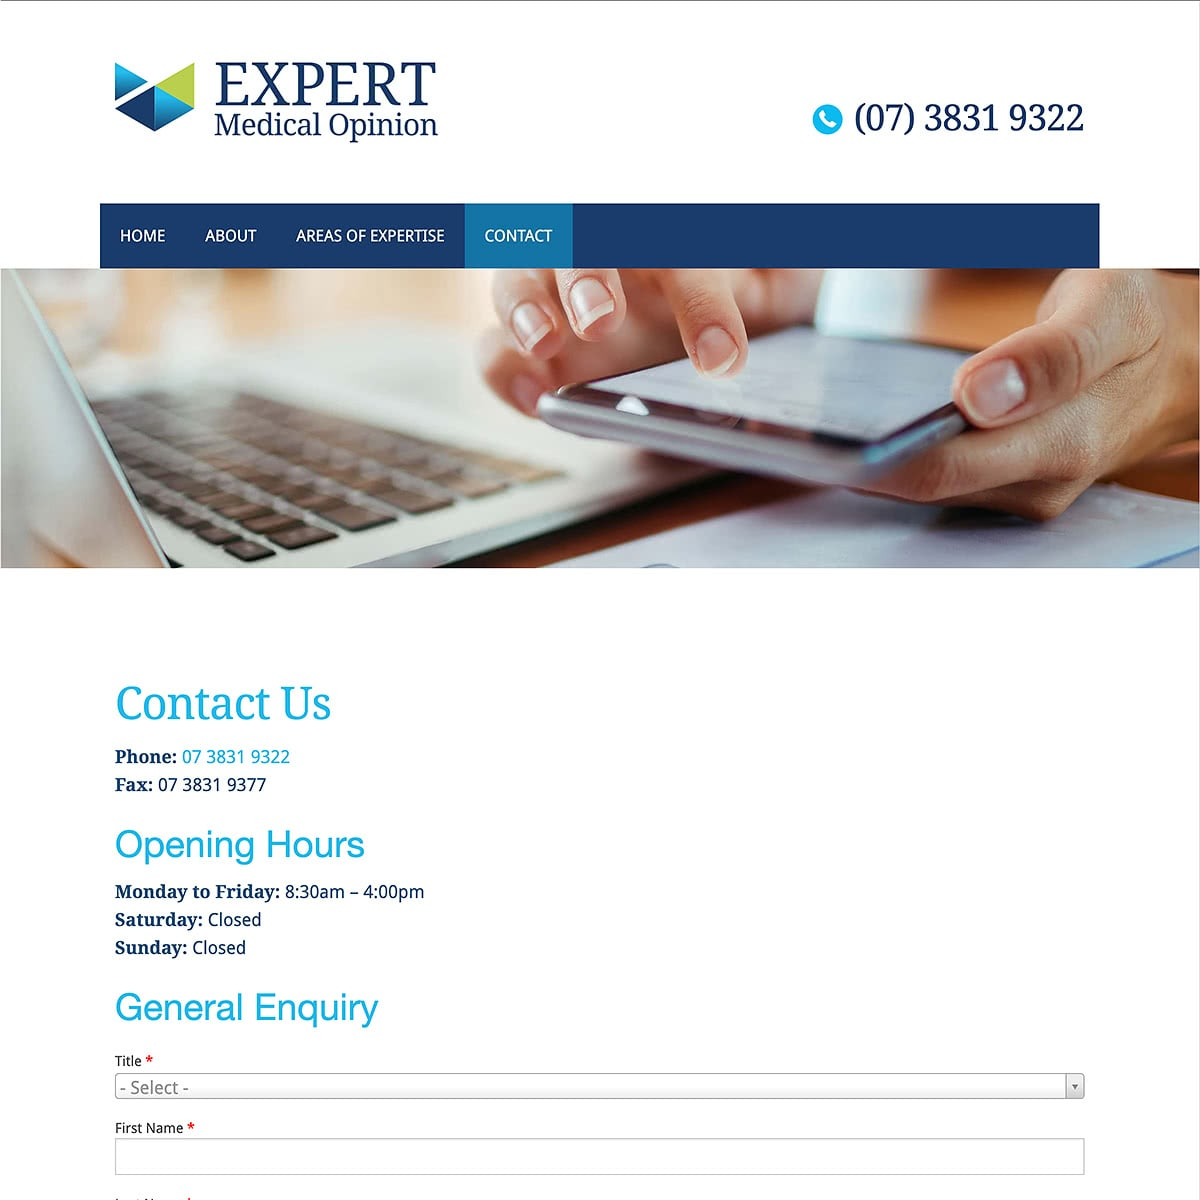 Expert Medical Opinion - Contact Us